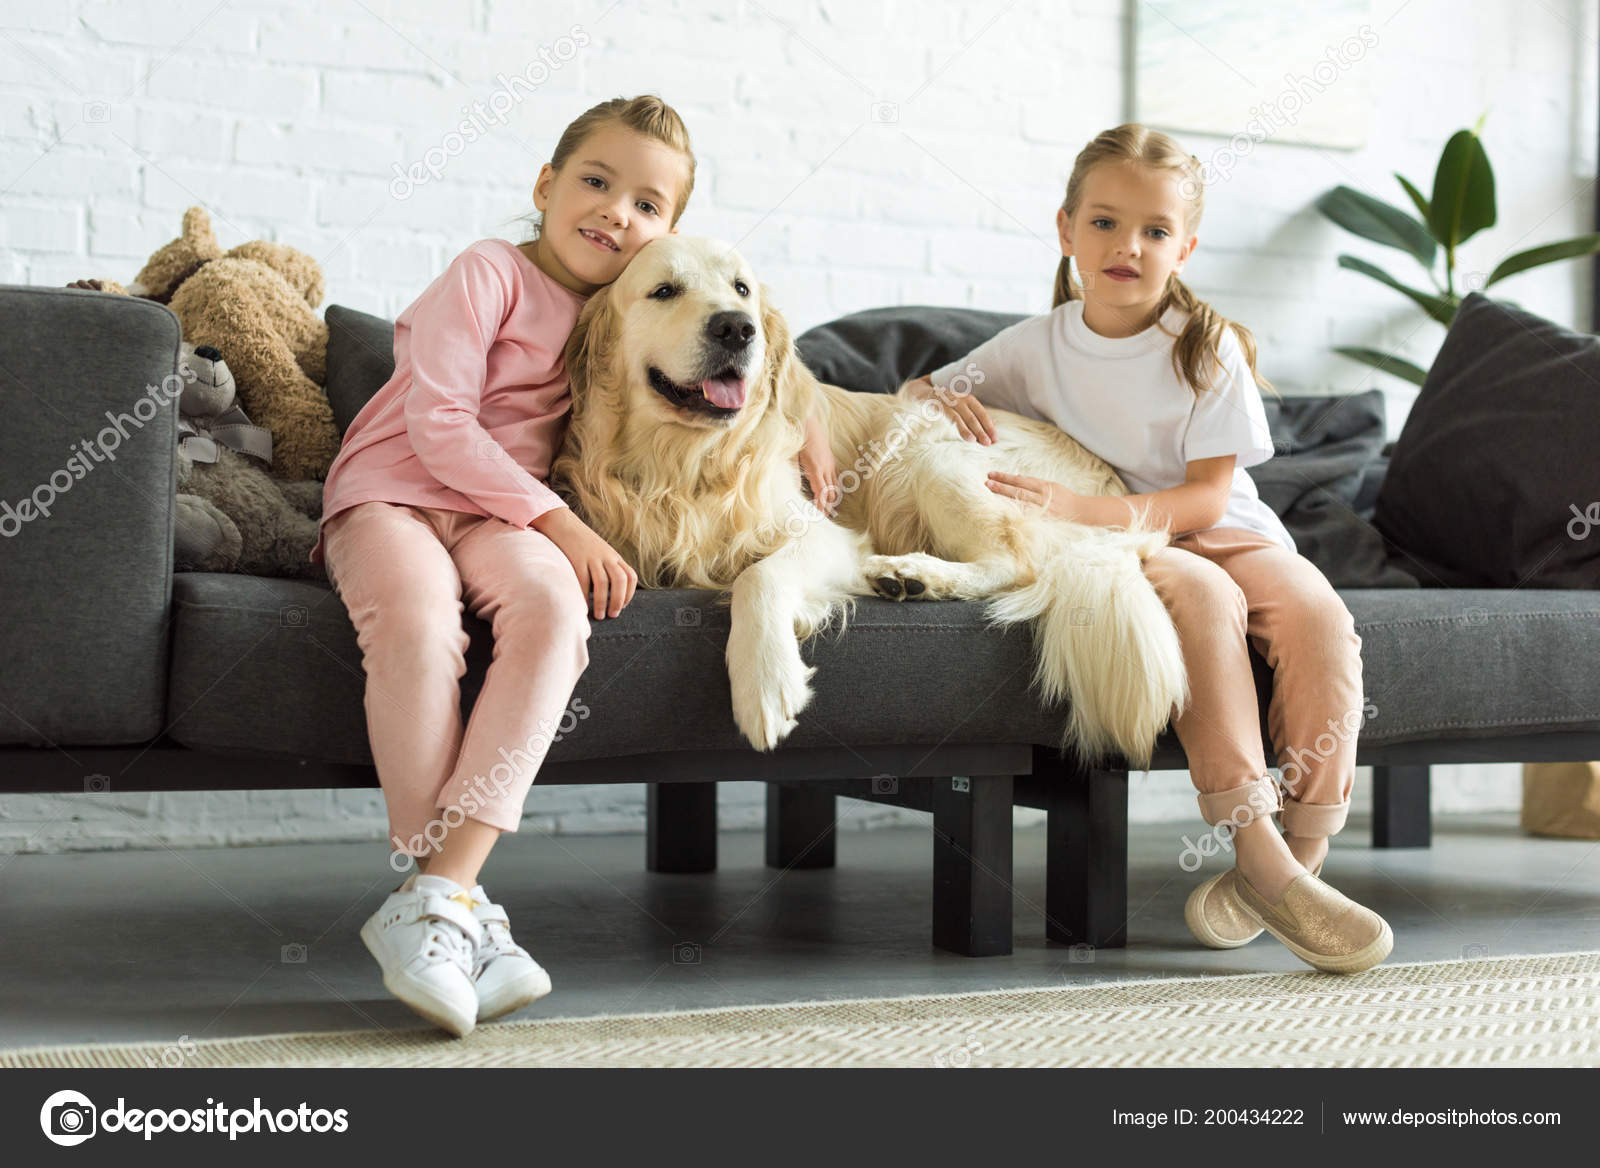 Adorable Kids Hugging Golden Retriever Dog While Sitting Sofa Home